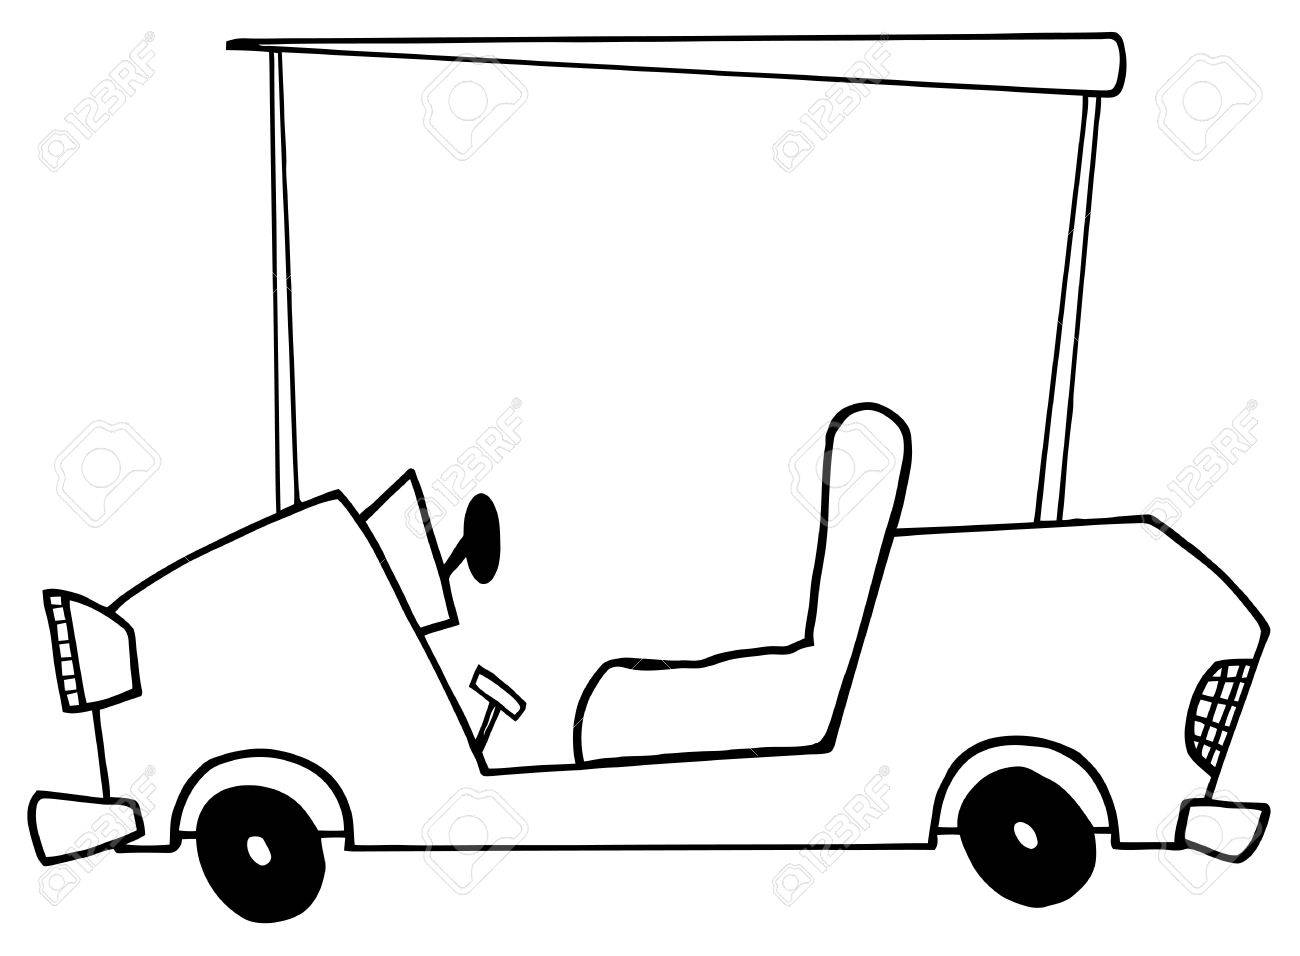 outlined golf cart royalty free cliparts vectors and stock